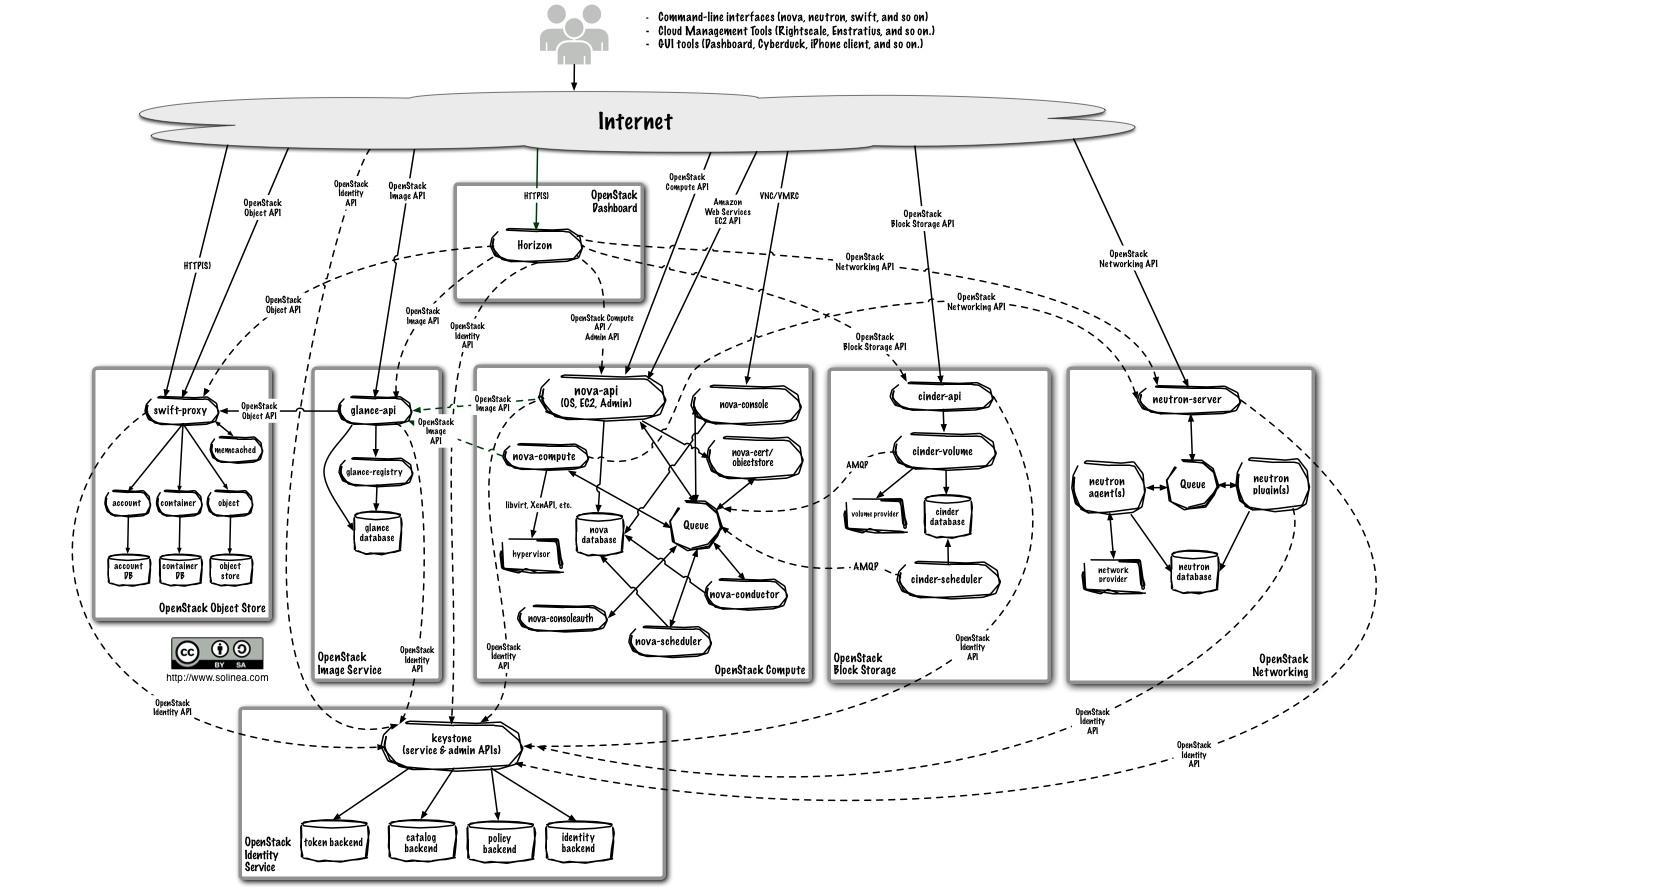 openstack logical architecture2